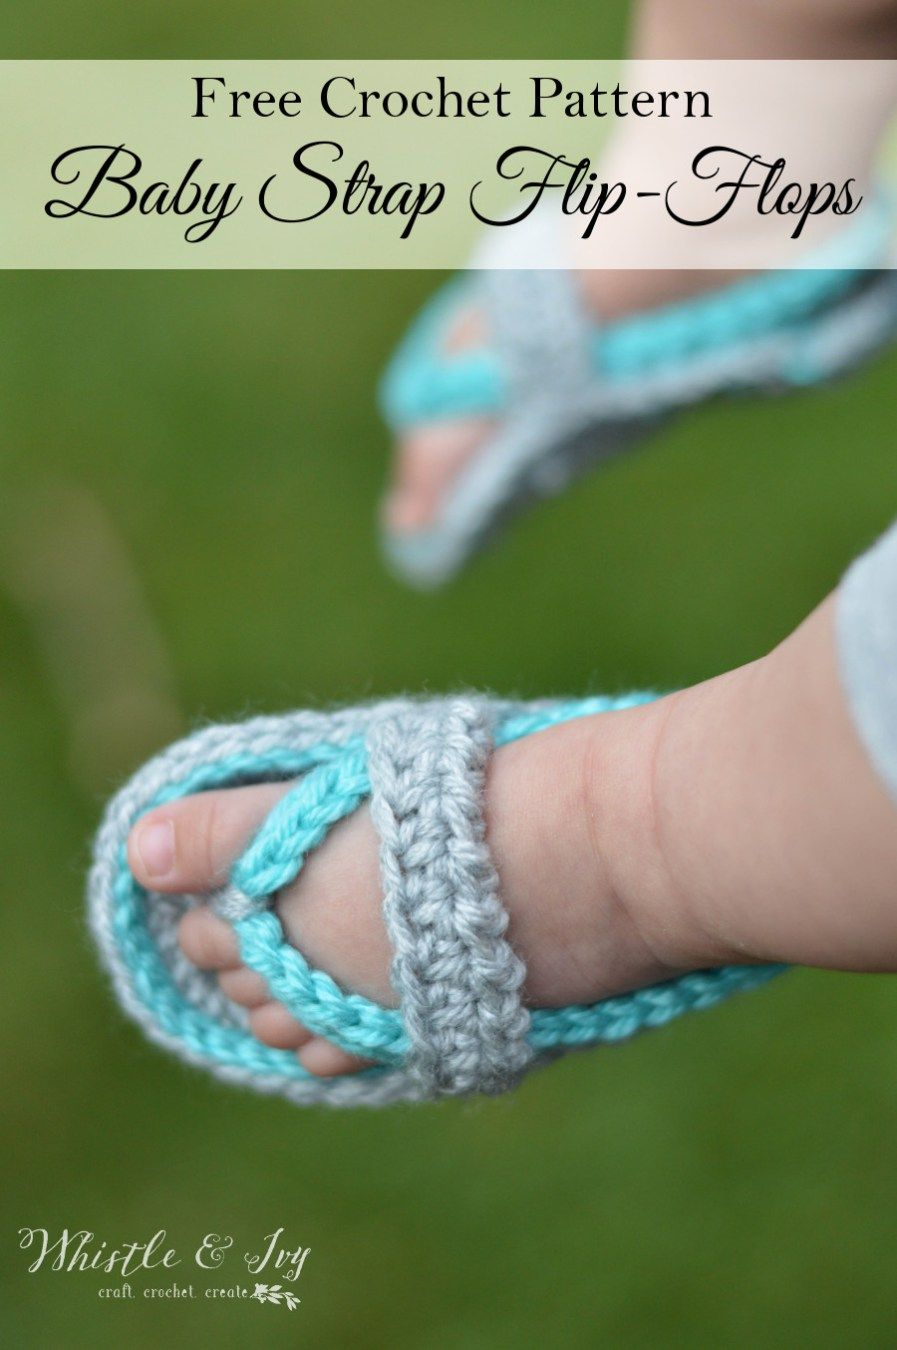 Crochet Baby Strap Flip Flop Sandals | Free crochet, Flipping and ...